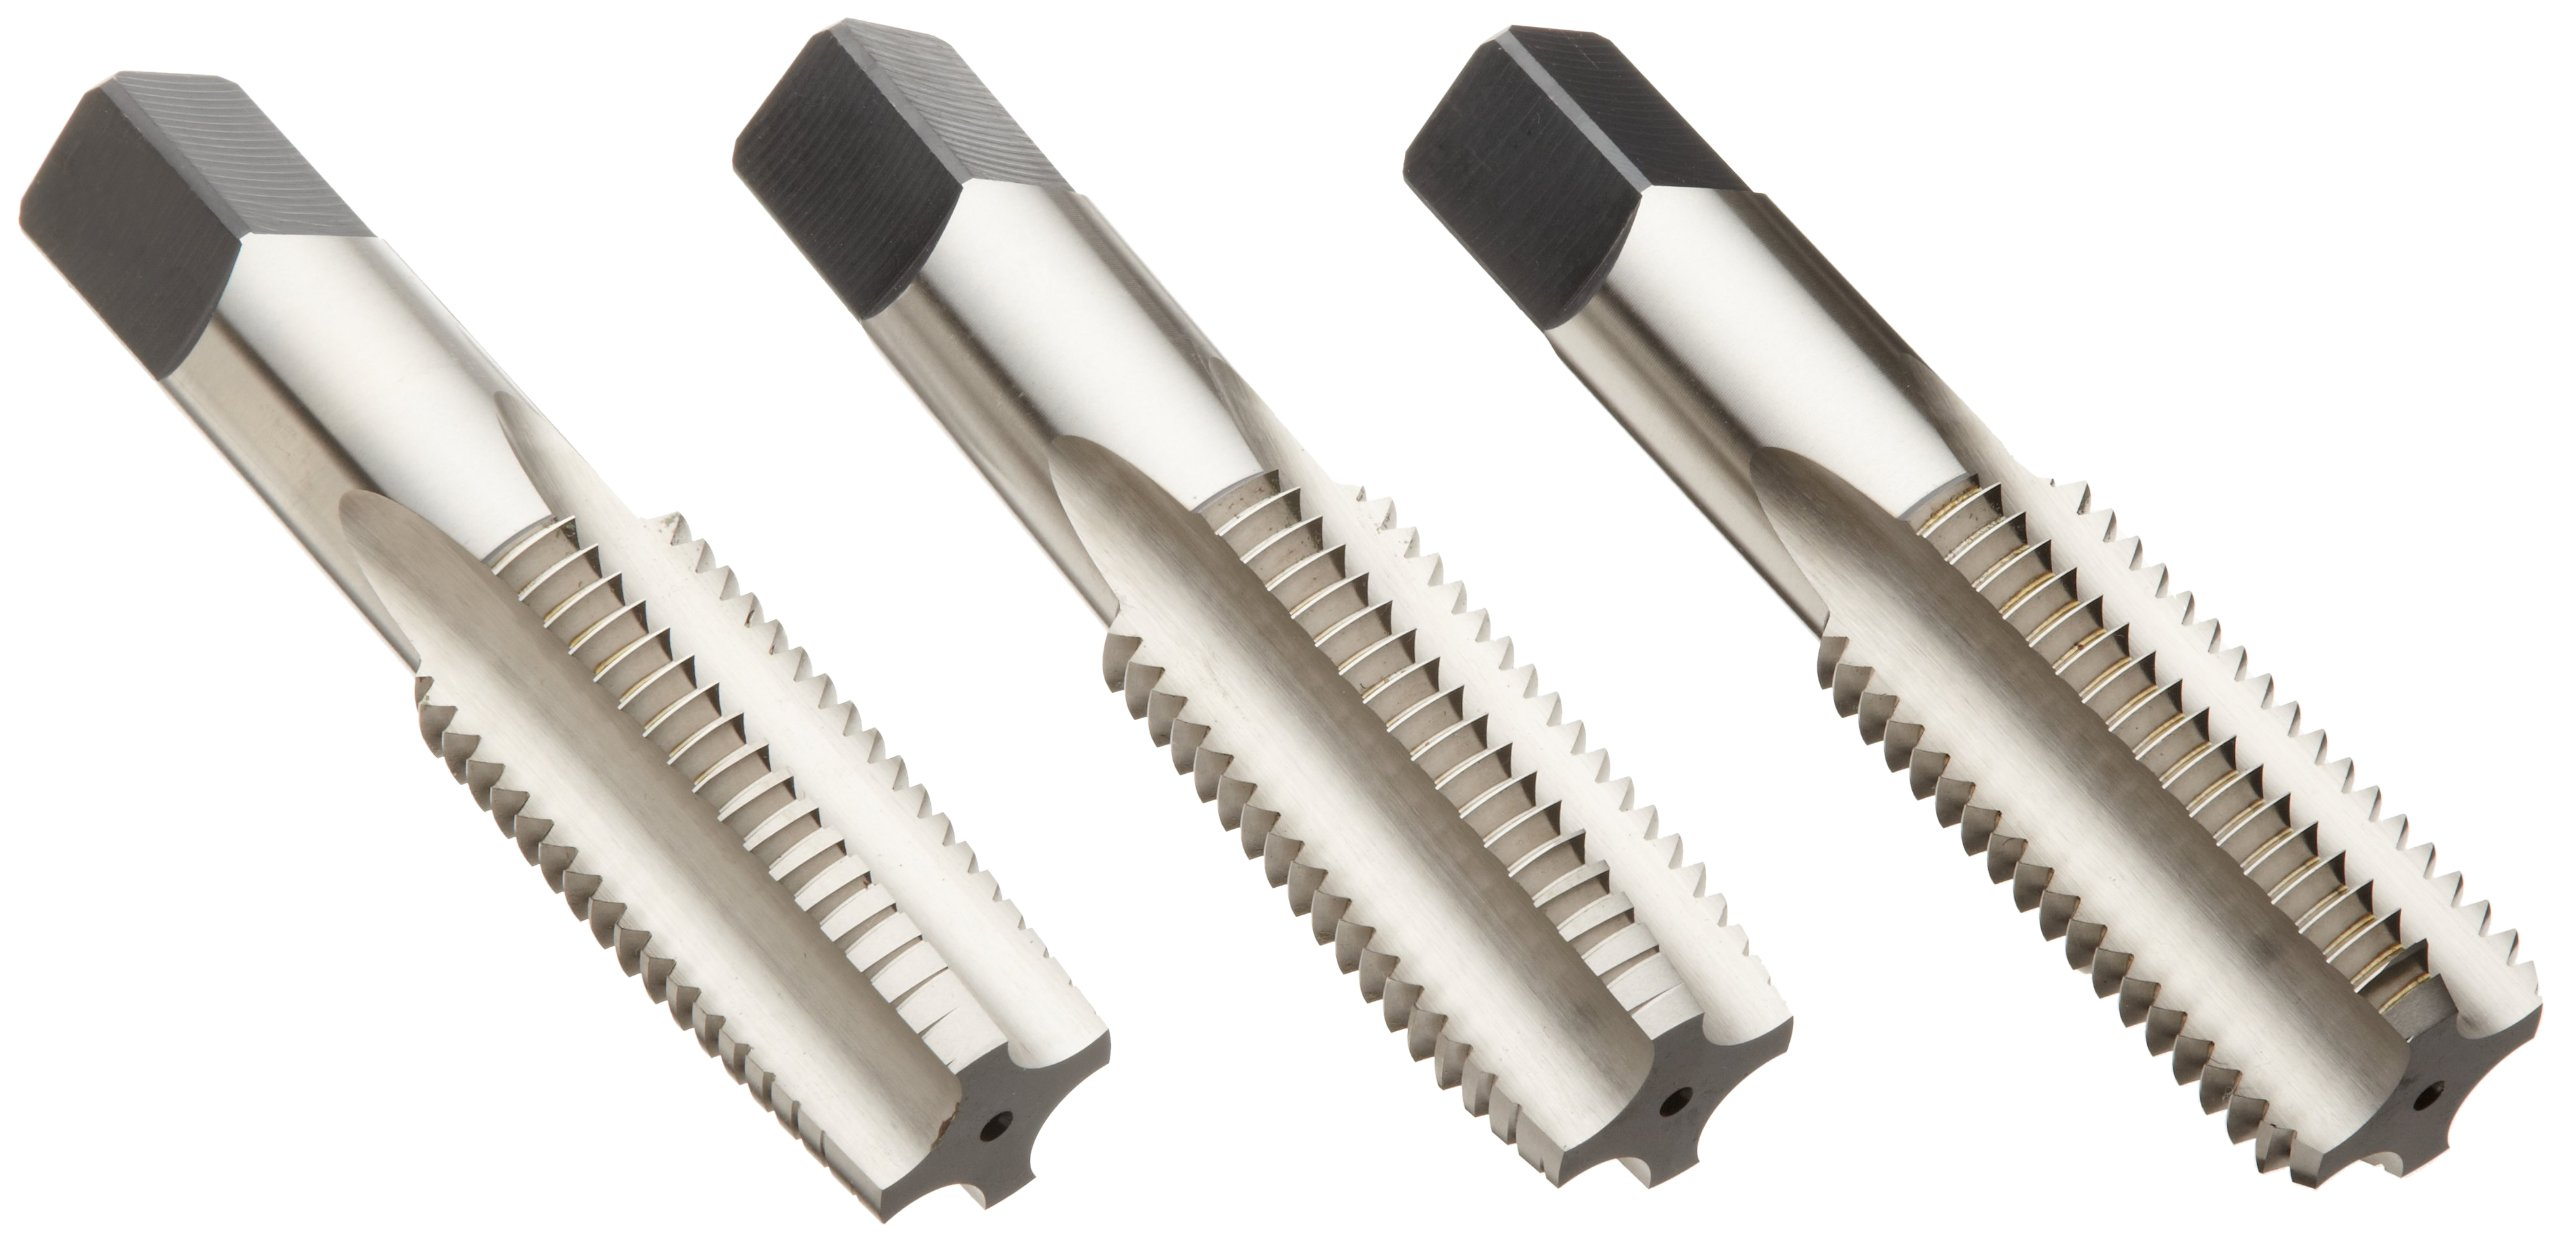 Union Butterfield 1500S(UNF) High-Speed Steel Hand Tap Set, Uncoated (Bright) Finish, Round Shank With Square End, 3-Piece (1 Taper, 1 Plug, 1 Bottoming Chamfer), 1/4''-28 Thread Size